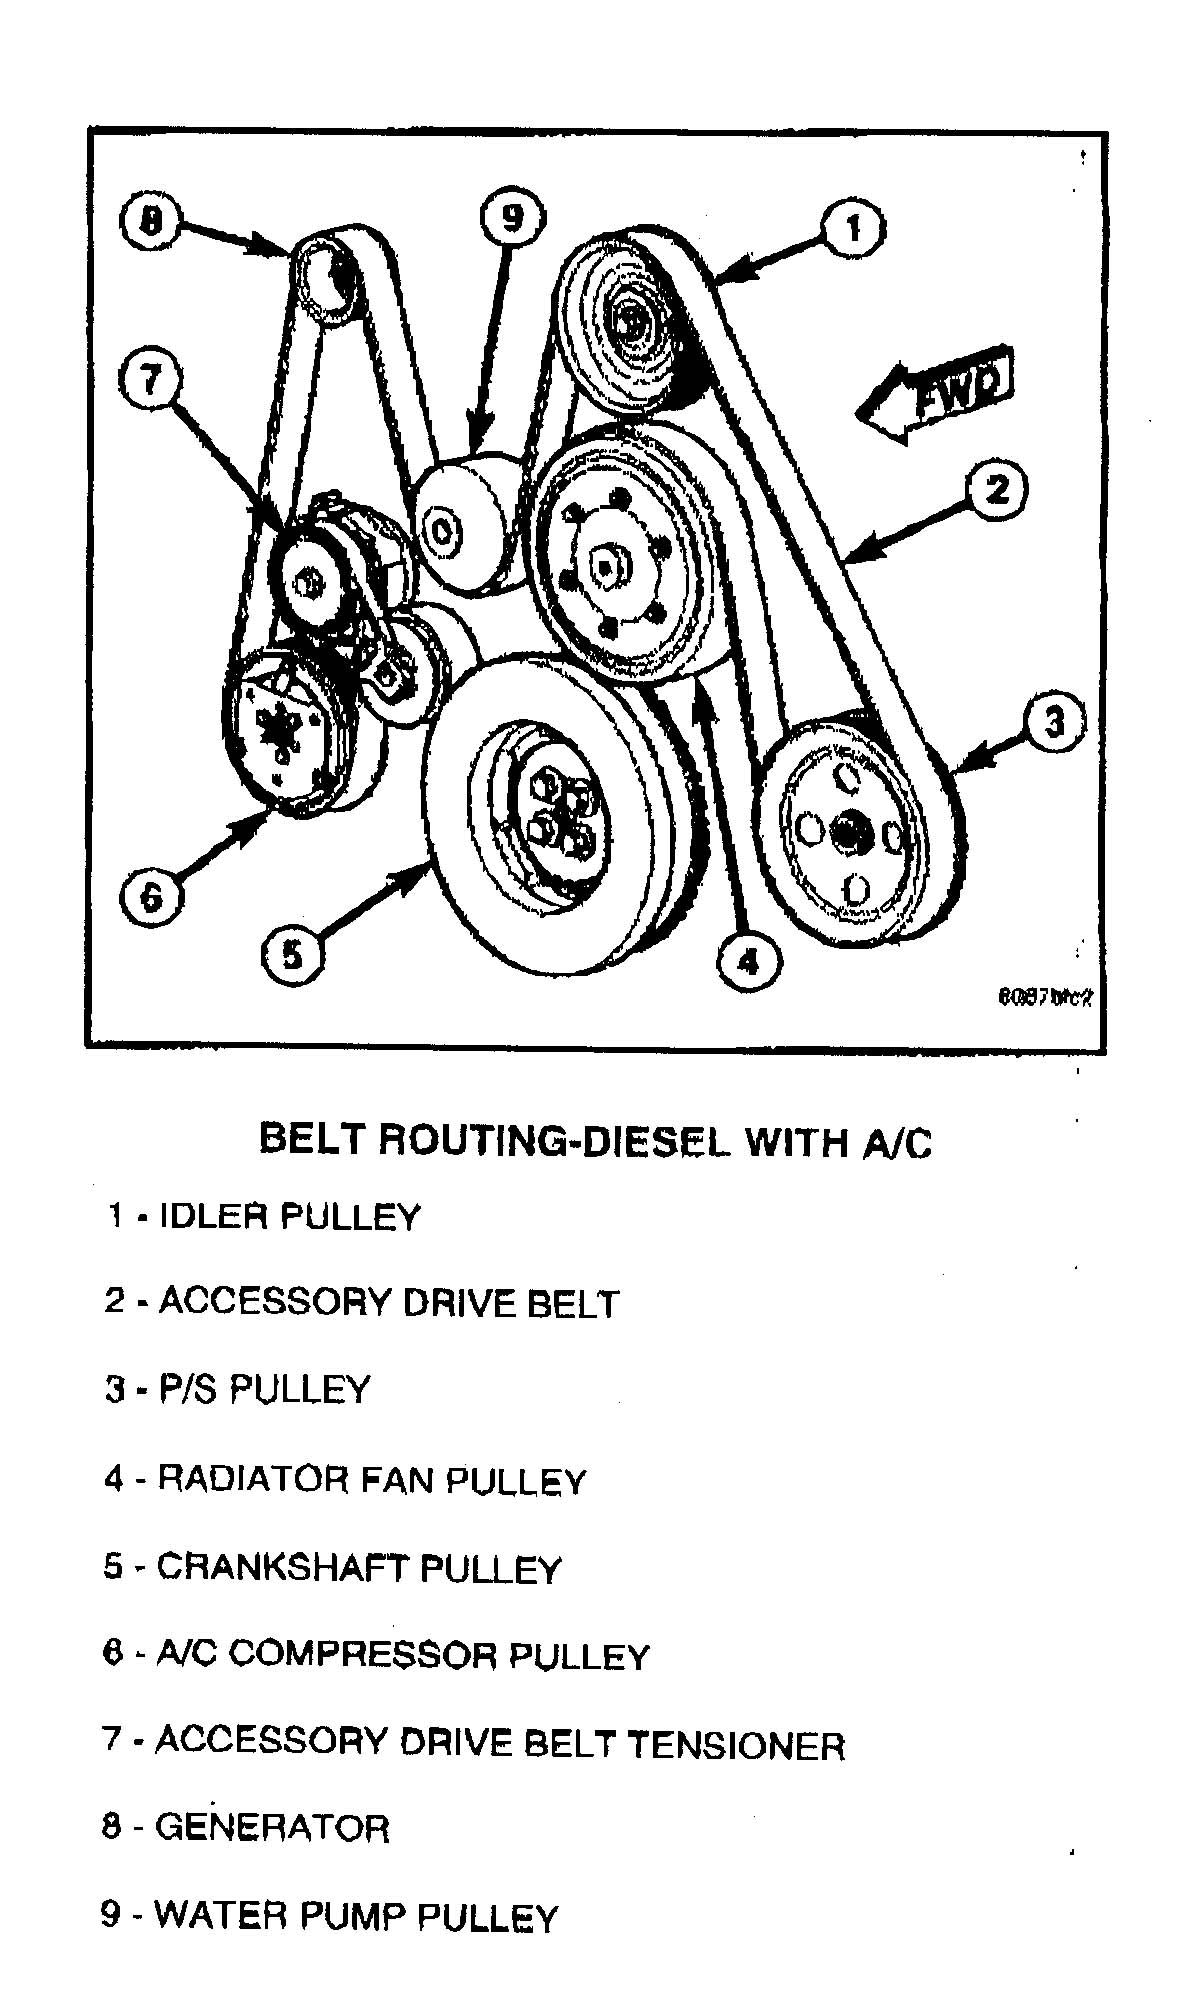 7c93c7a6a021ecd8206c0fc30a782c0a 6 7 belt routing diagram dodge diesel diesel truck resource